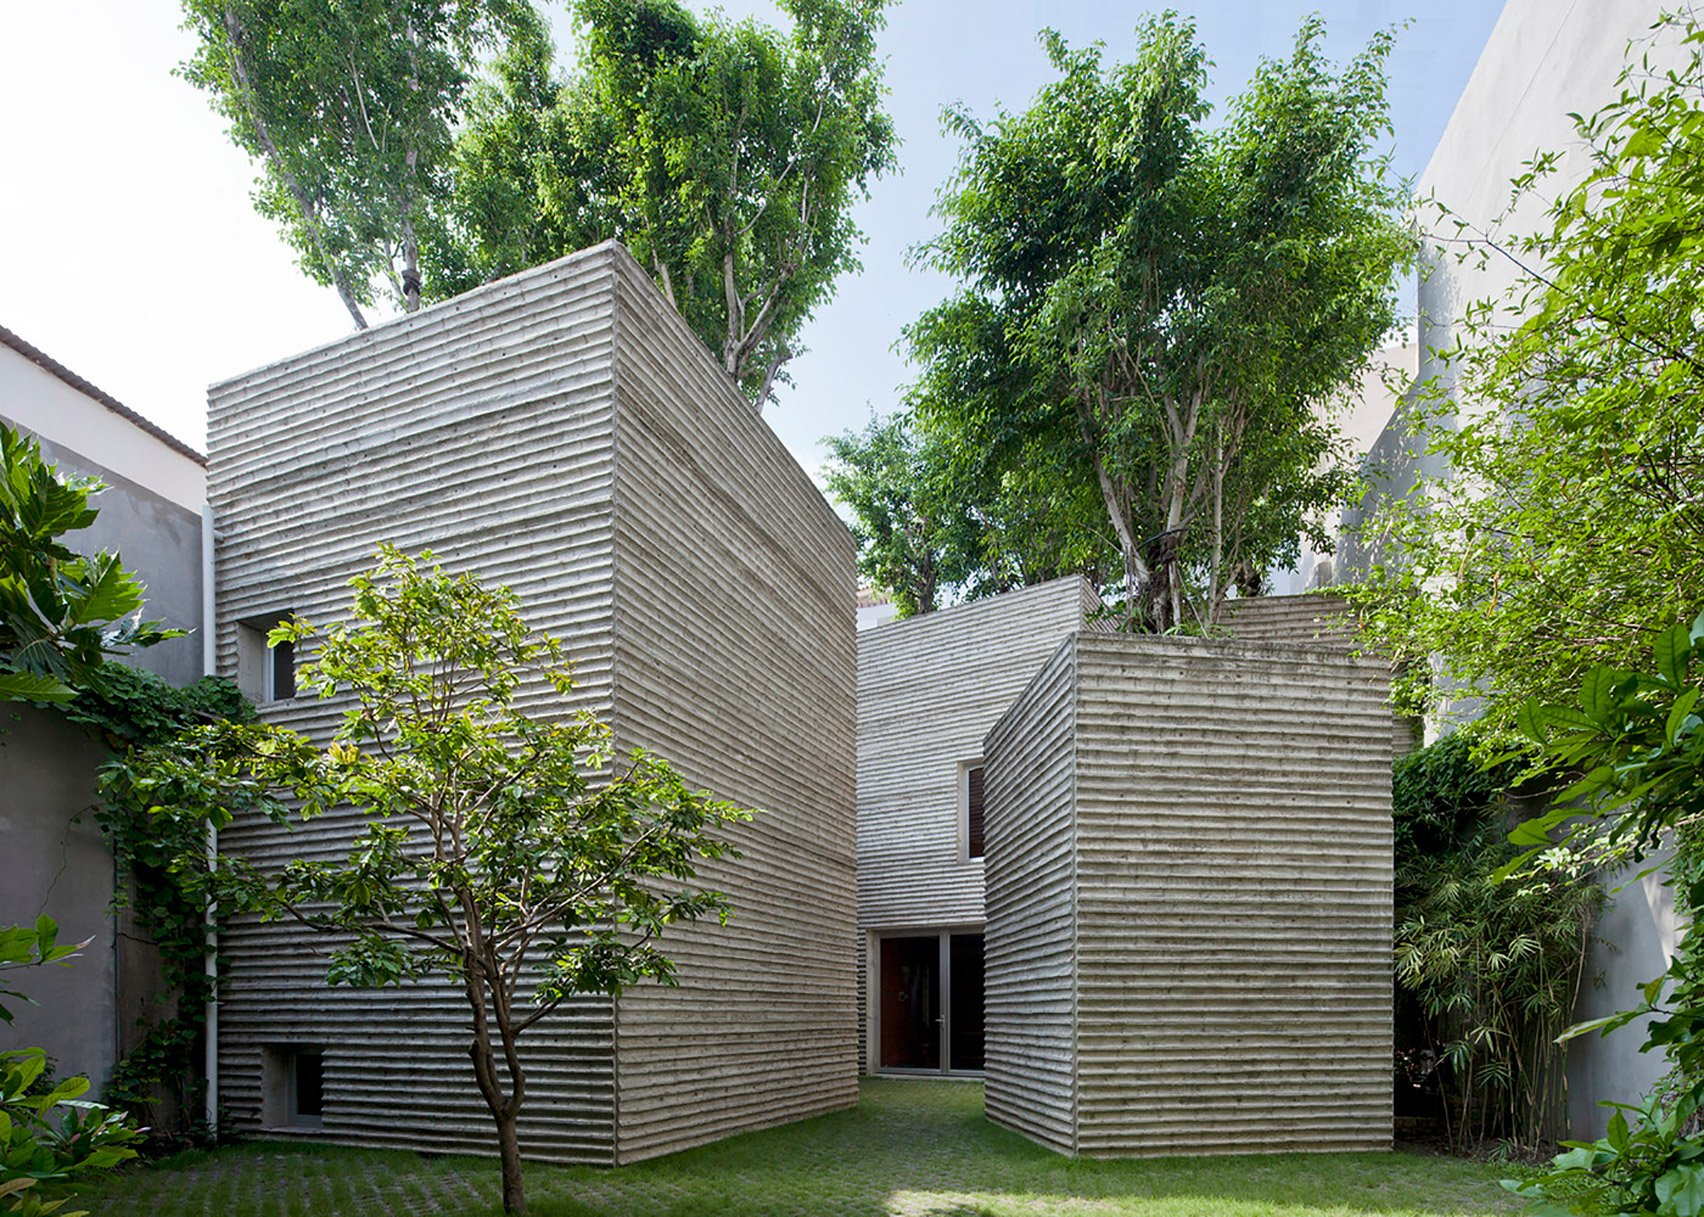 House for Trees by VTN Architects